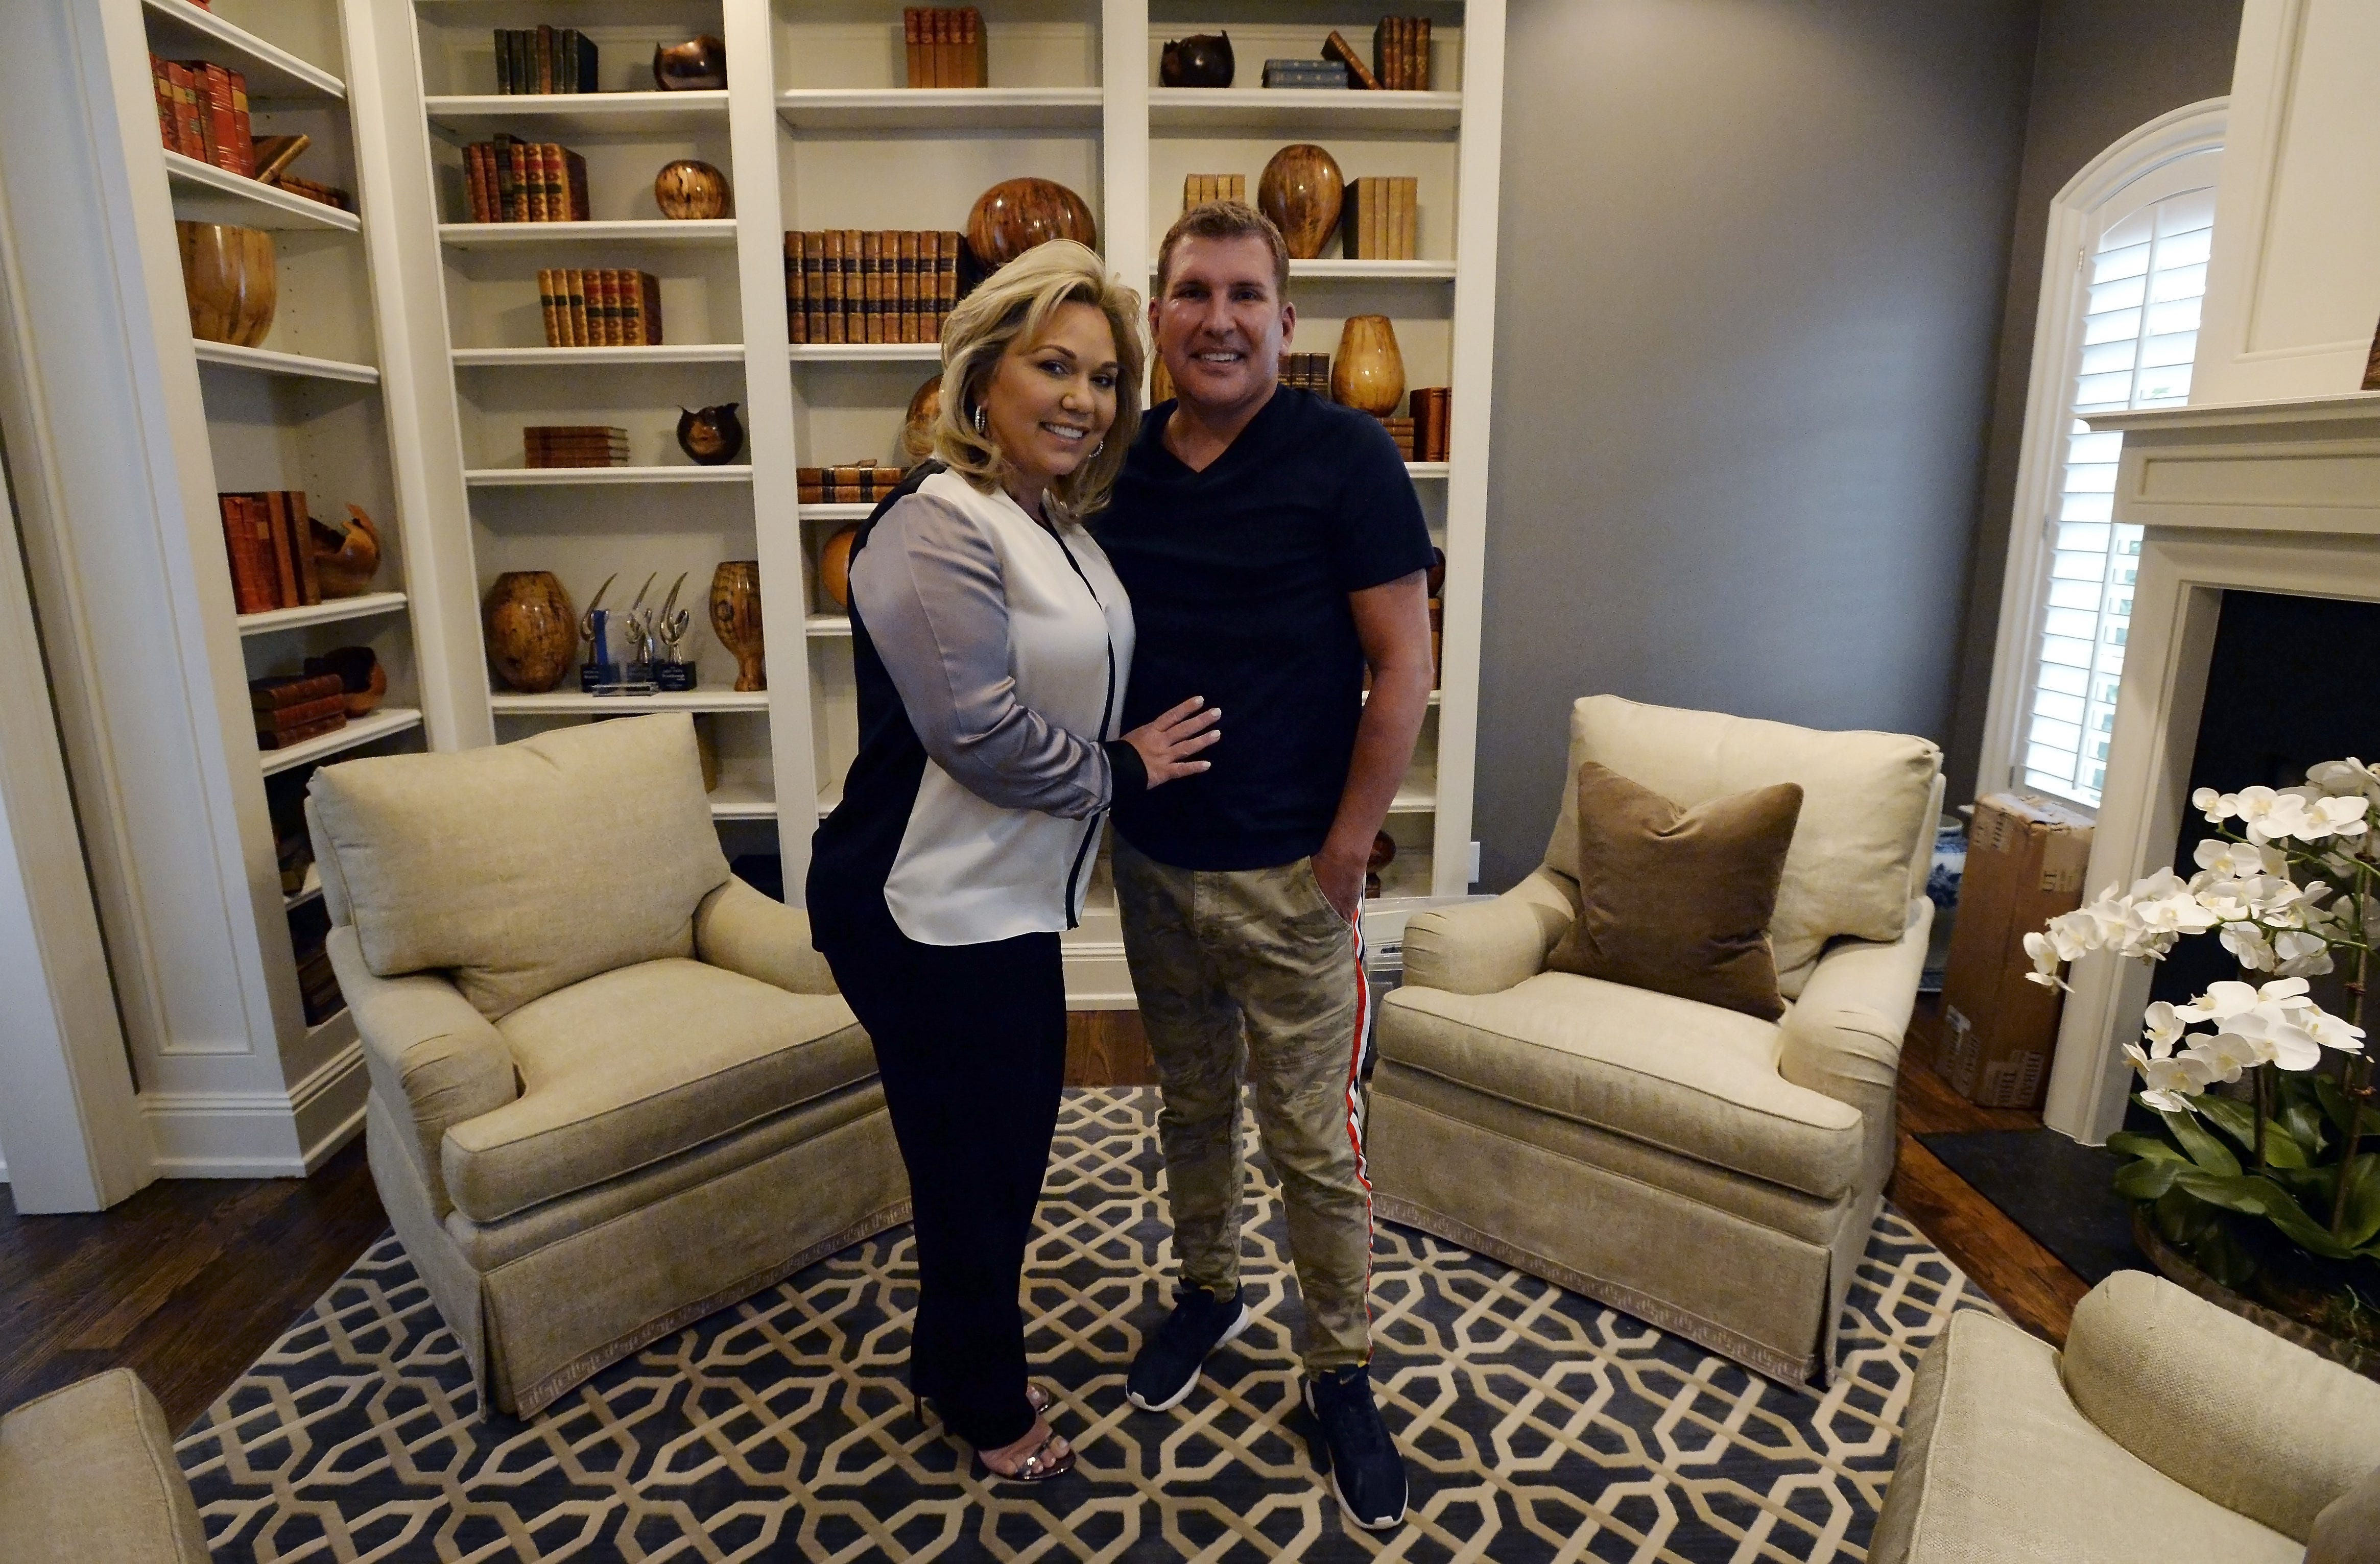 Reality stars Todd and Julie Chrisley sue official over bogus tax evasion claims